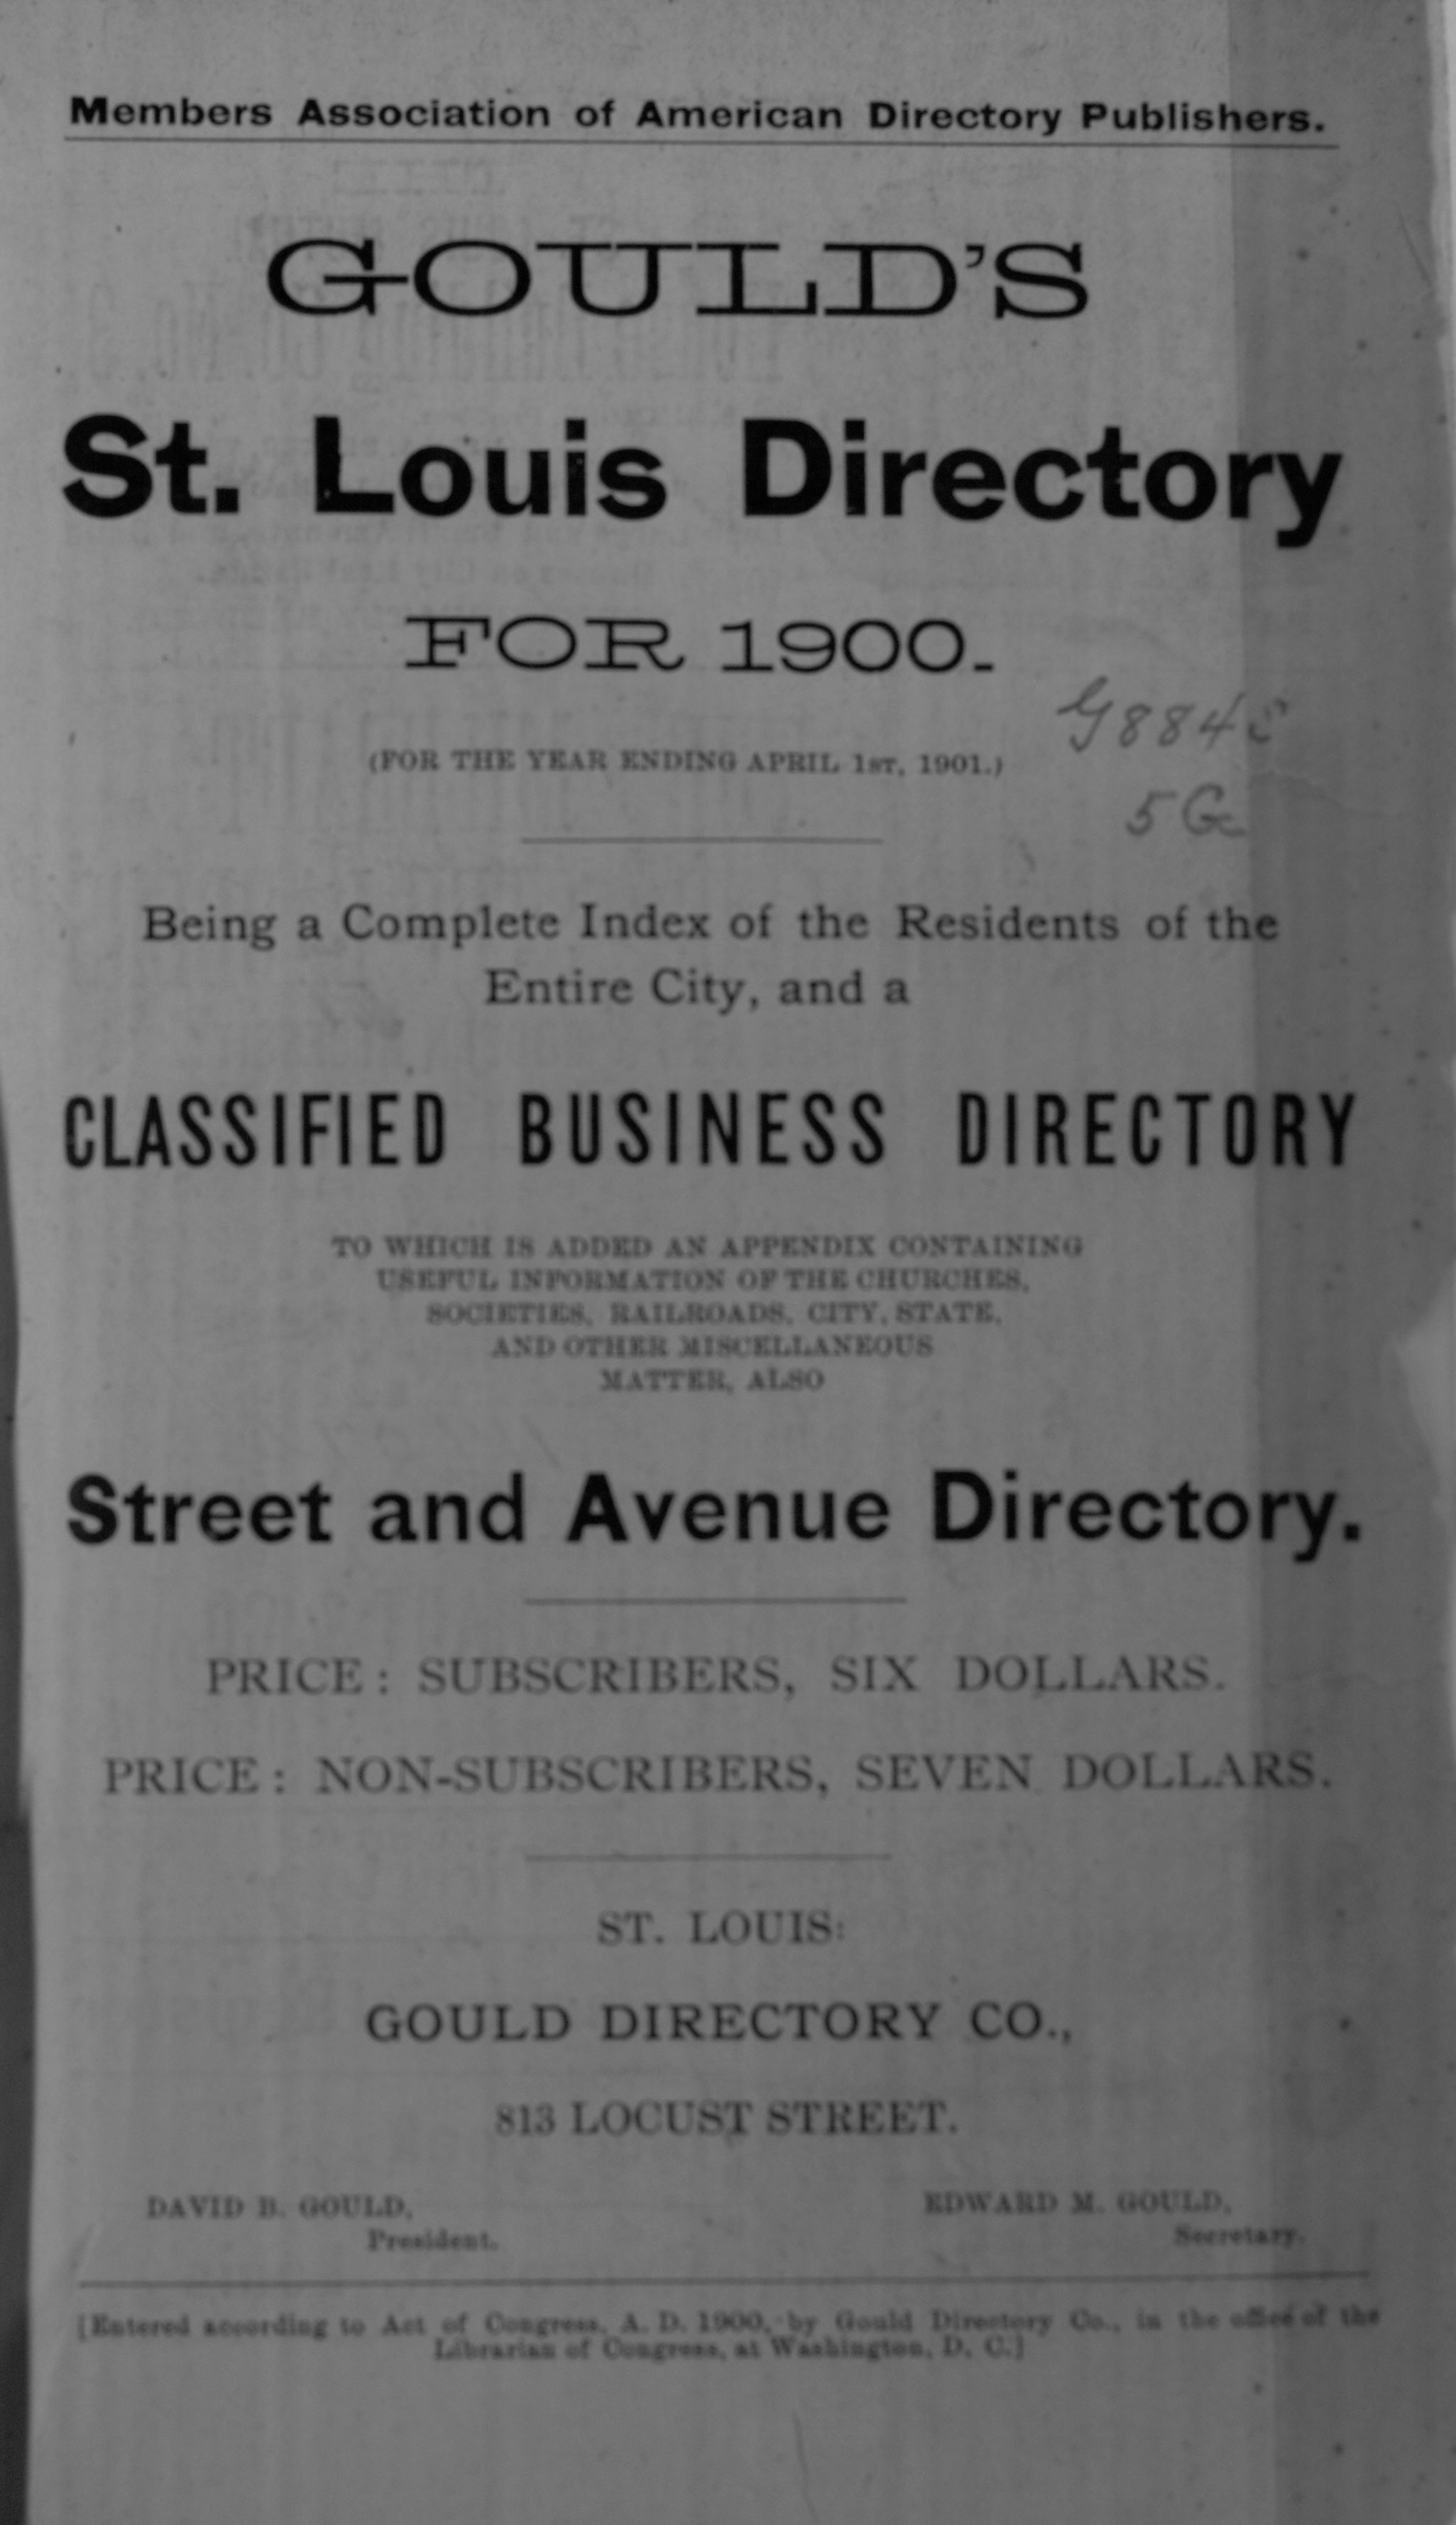 Gould's St. Louis Directory for 1900 (For the Year Ending April 1st, 1901)